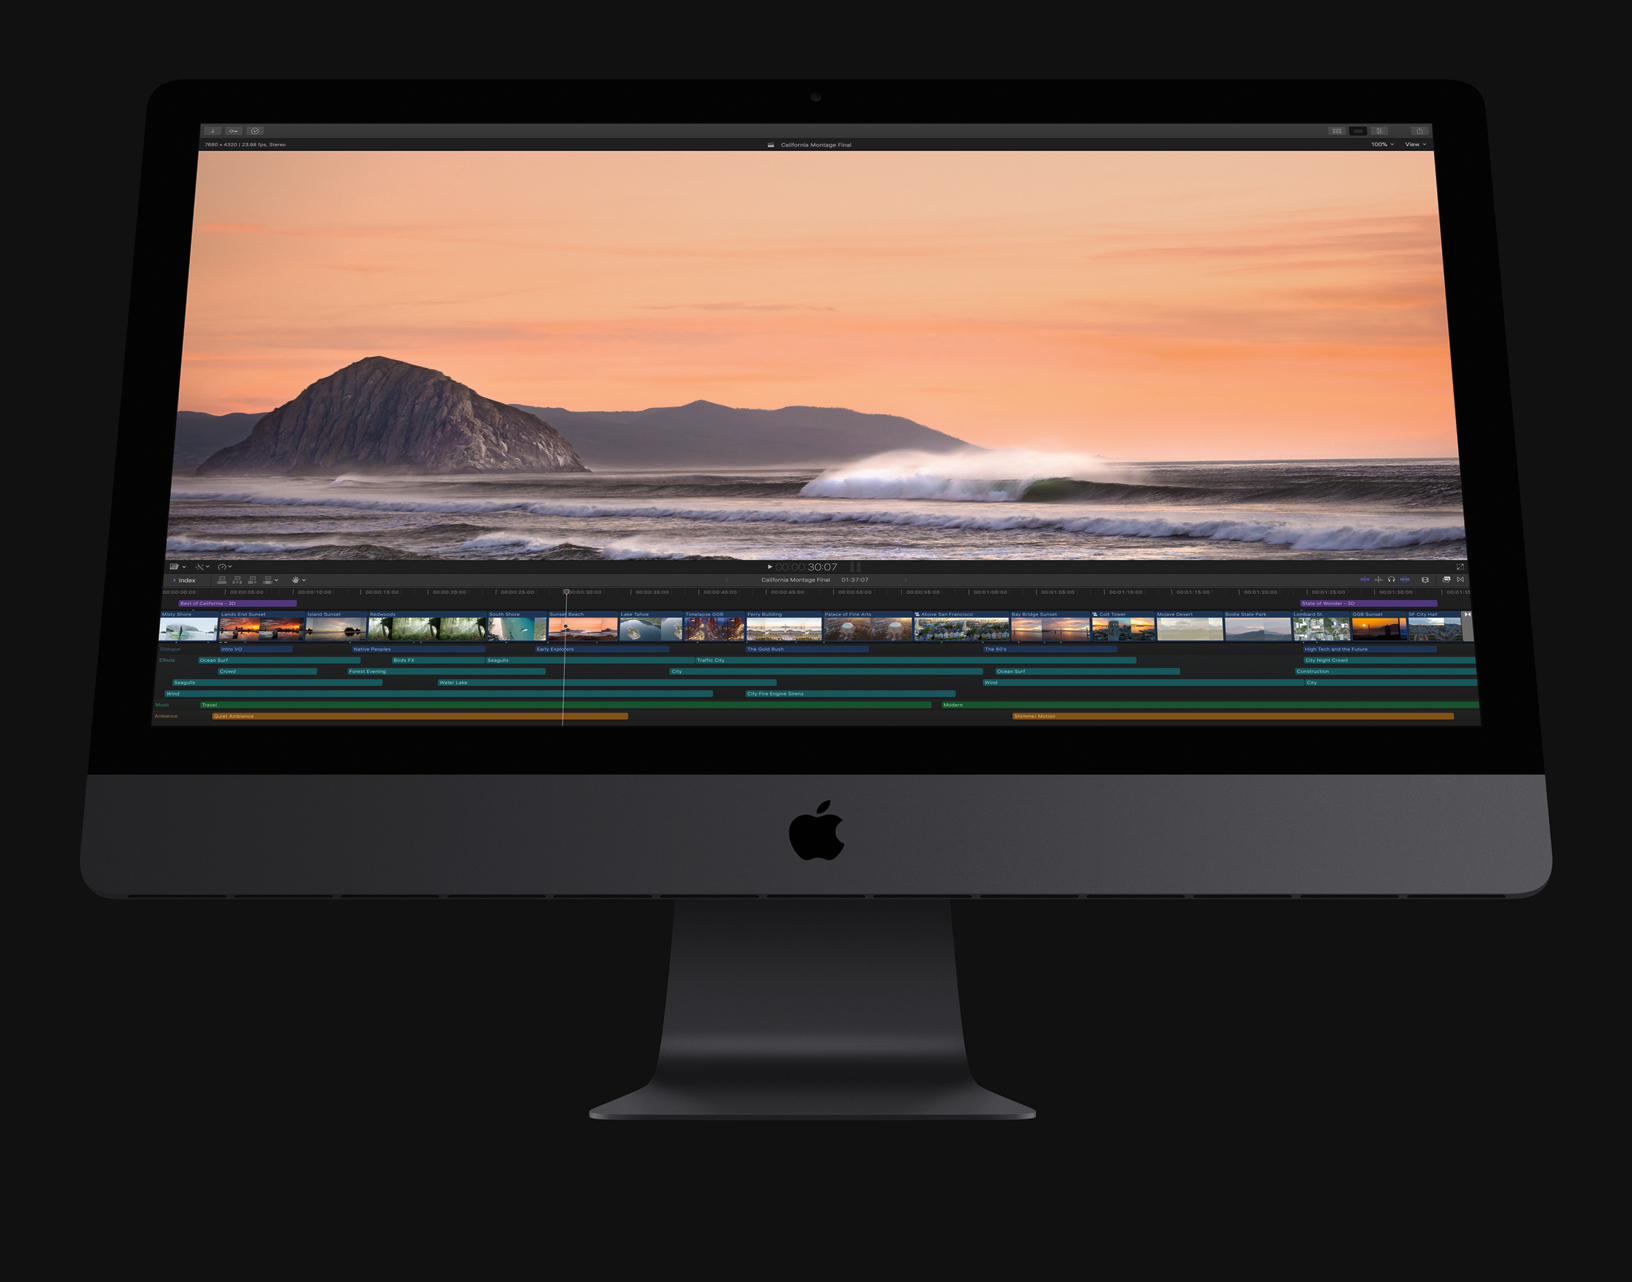 Apple introduces new ProRes RAW video format with Final Cut Pro X